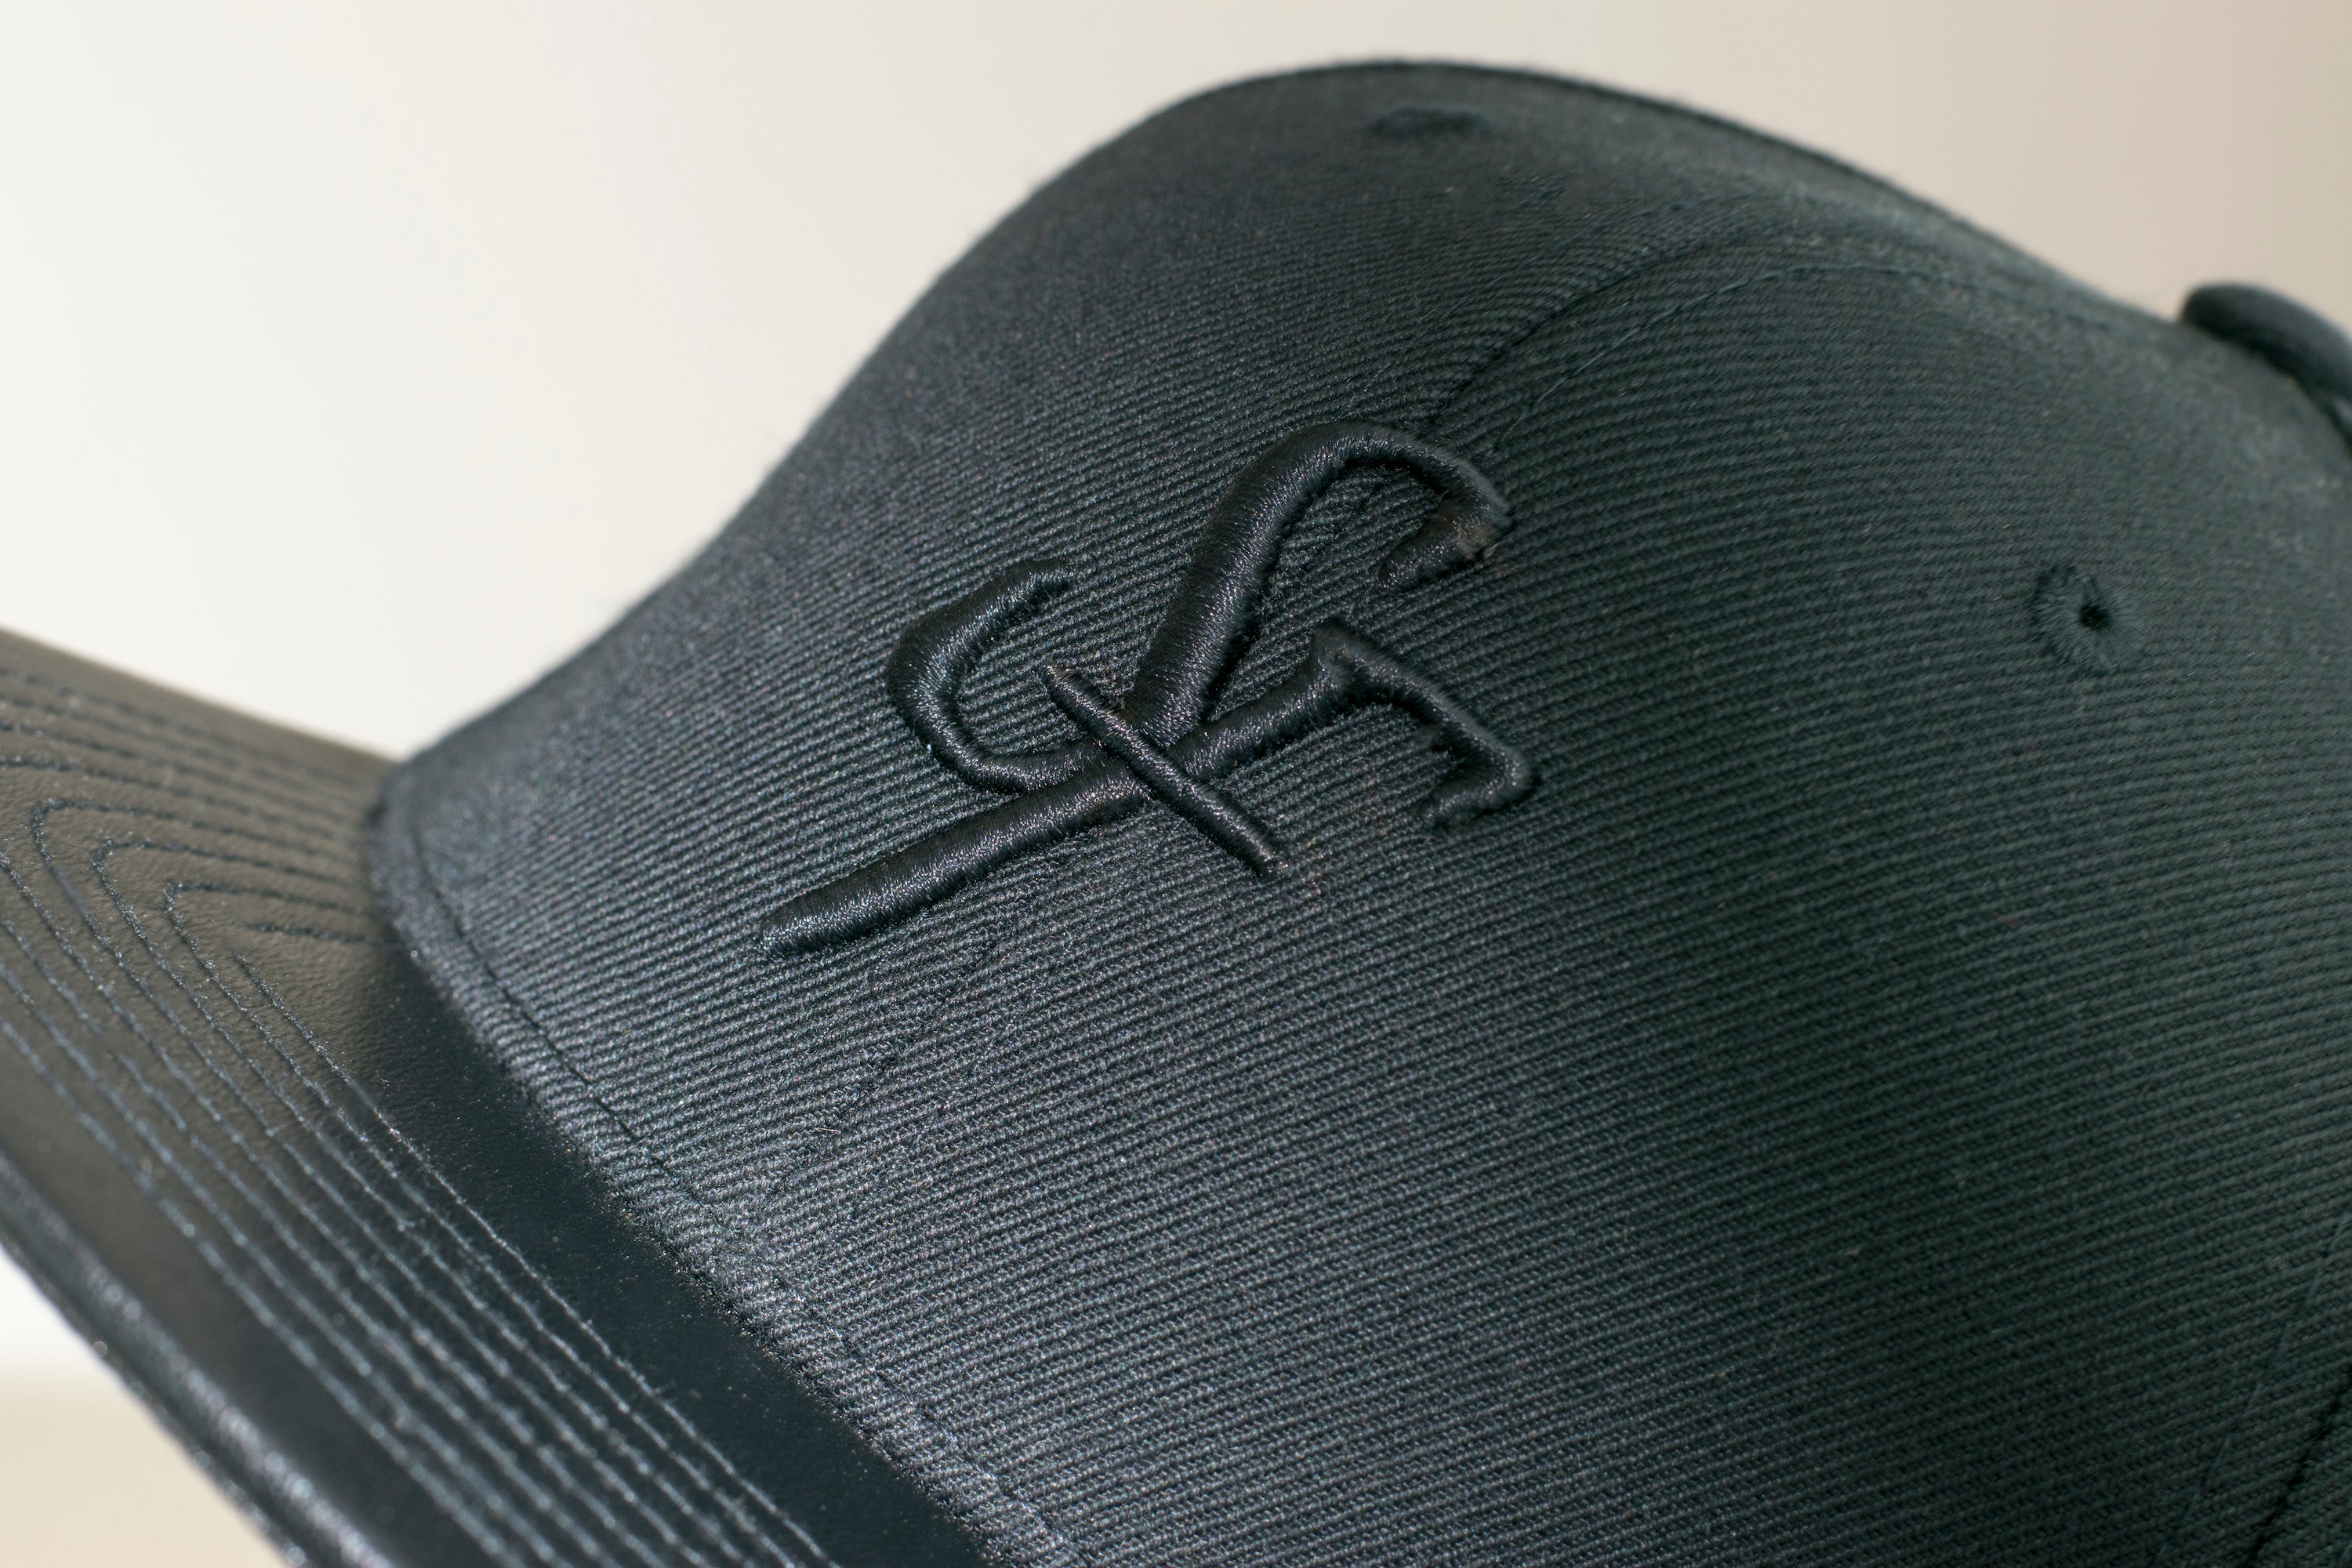 SF Leather Snapback - Black - Six Figures Official